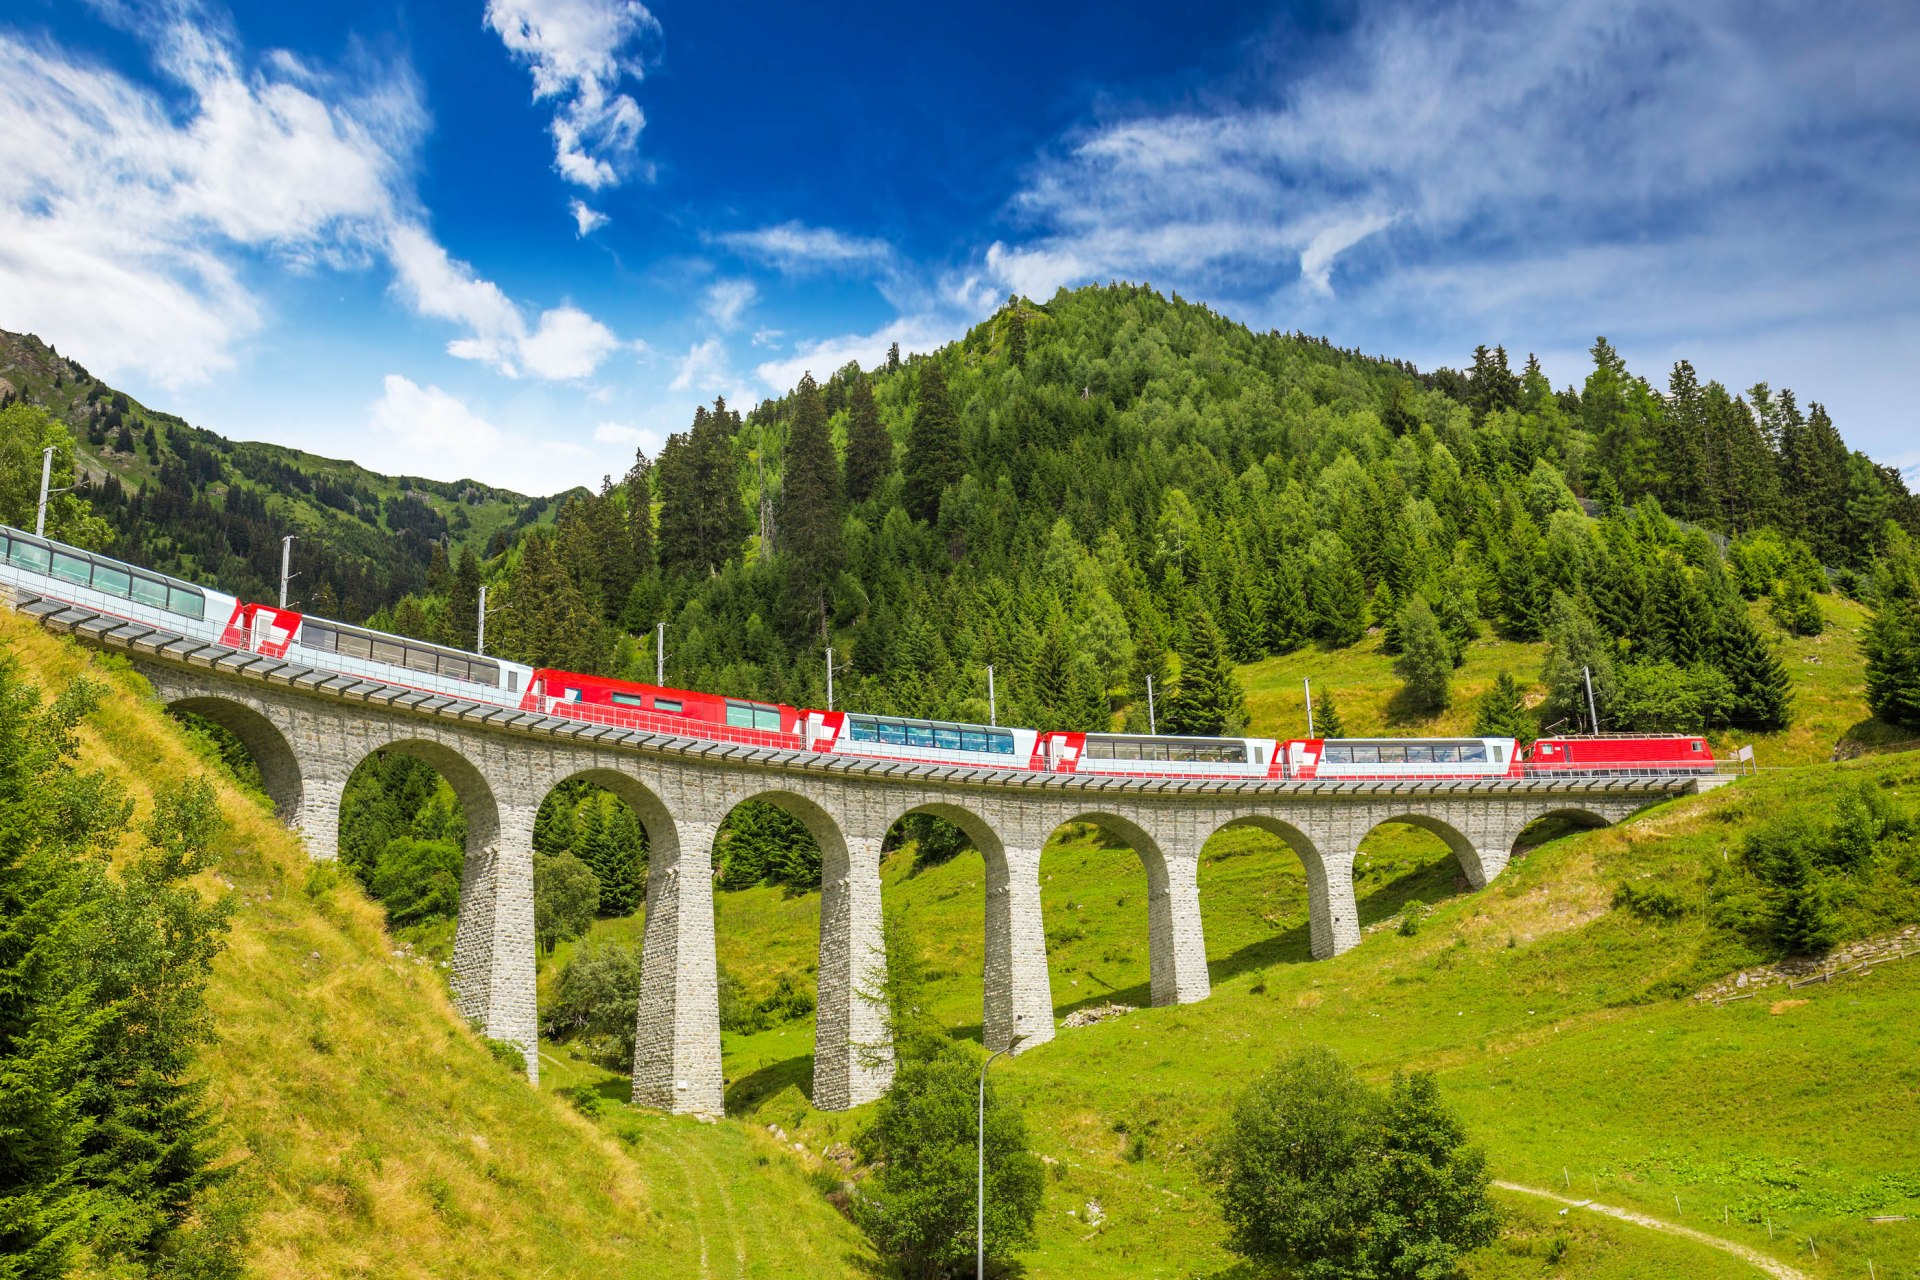 Train on famous landwasser Viaduct bridge. Photo: gevision/Bigstock.com